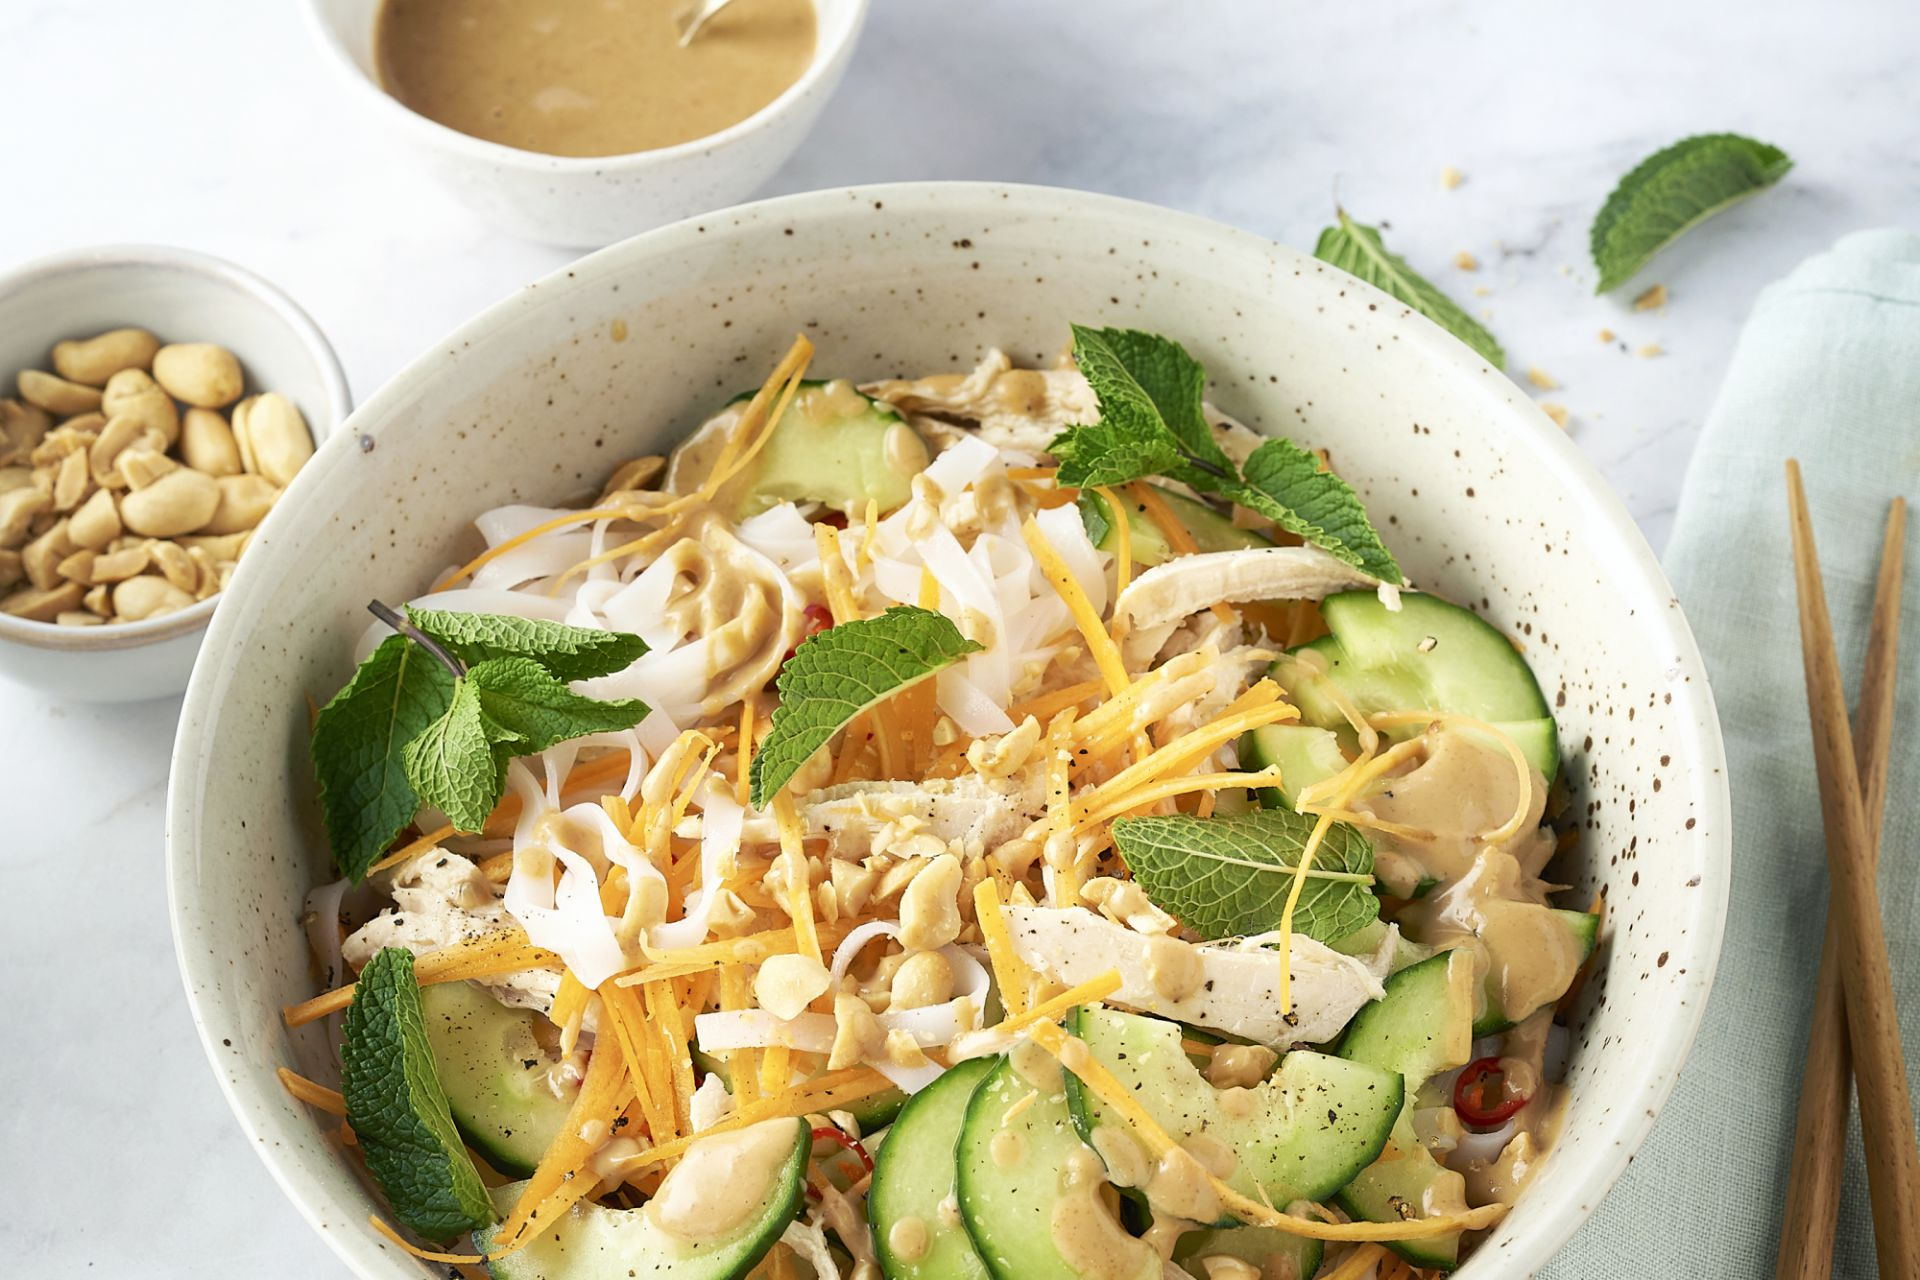 Vietnamese noedelsalade met pulled chicken en pindadressing